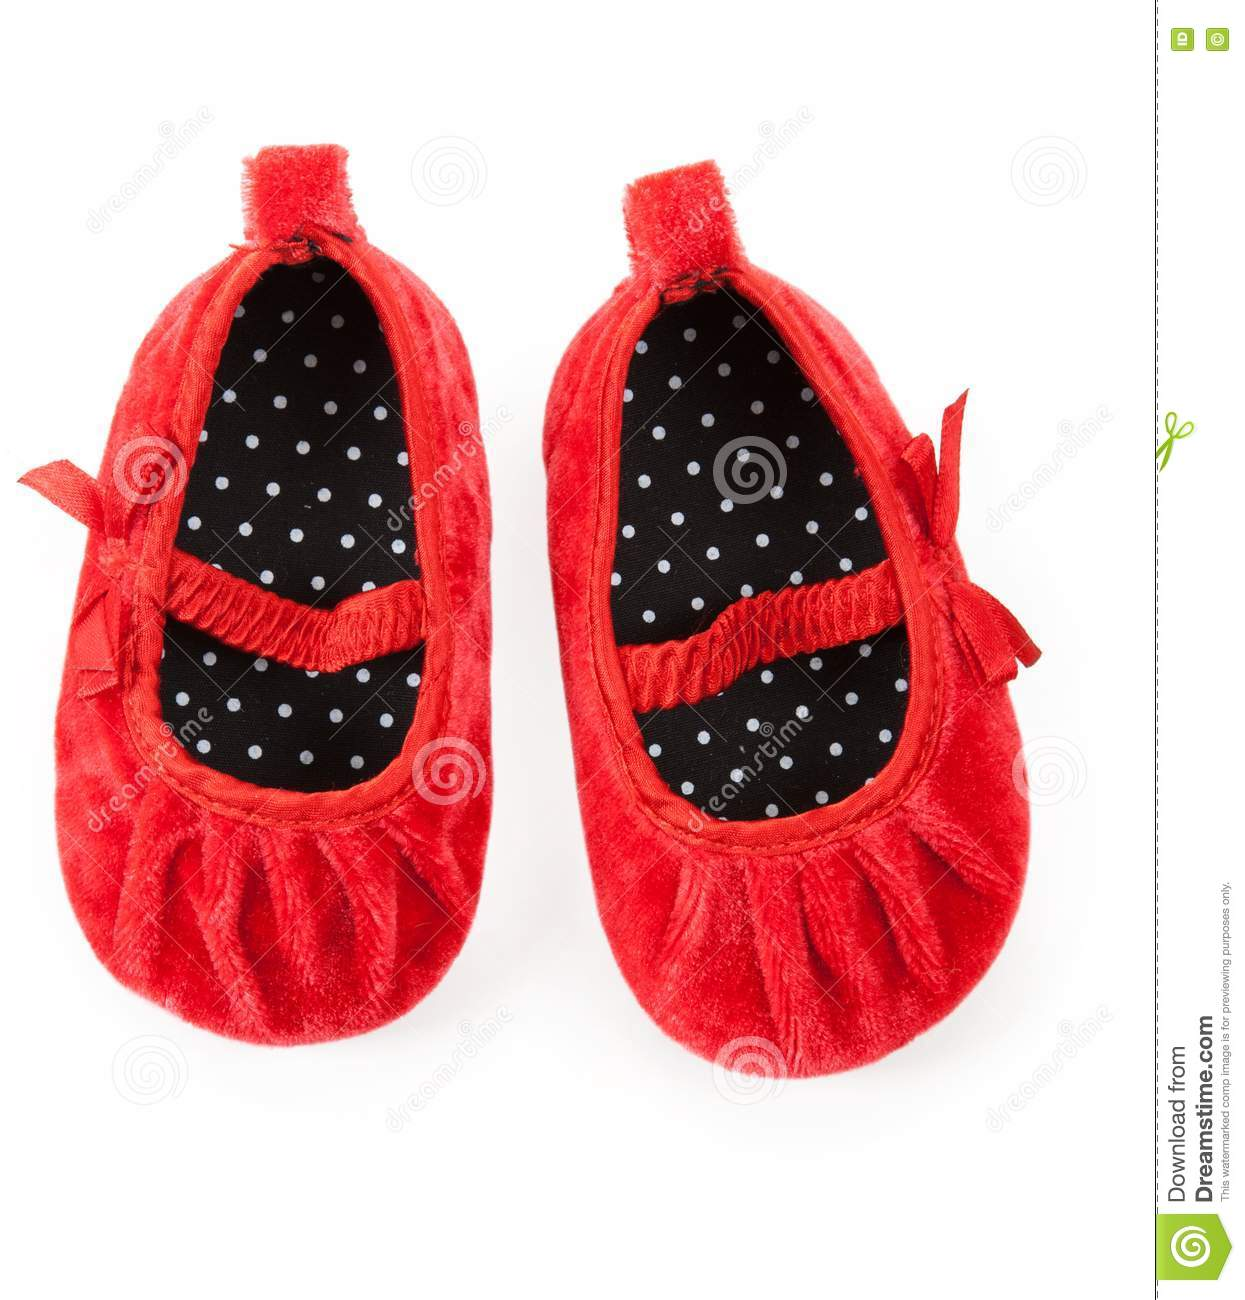 Red Baby Booties Royalty Free Stock s Image